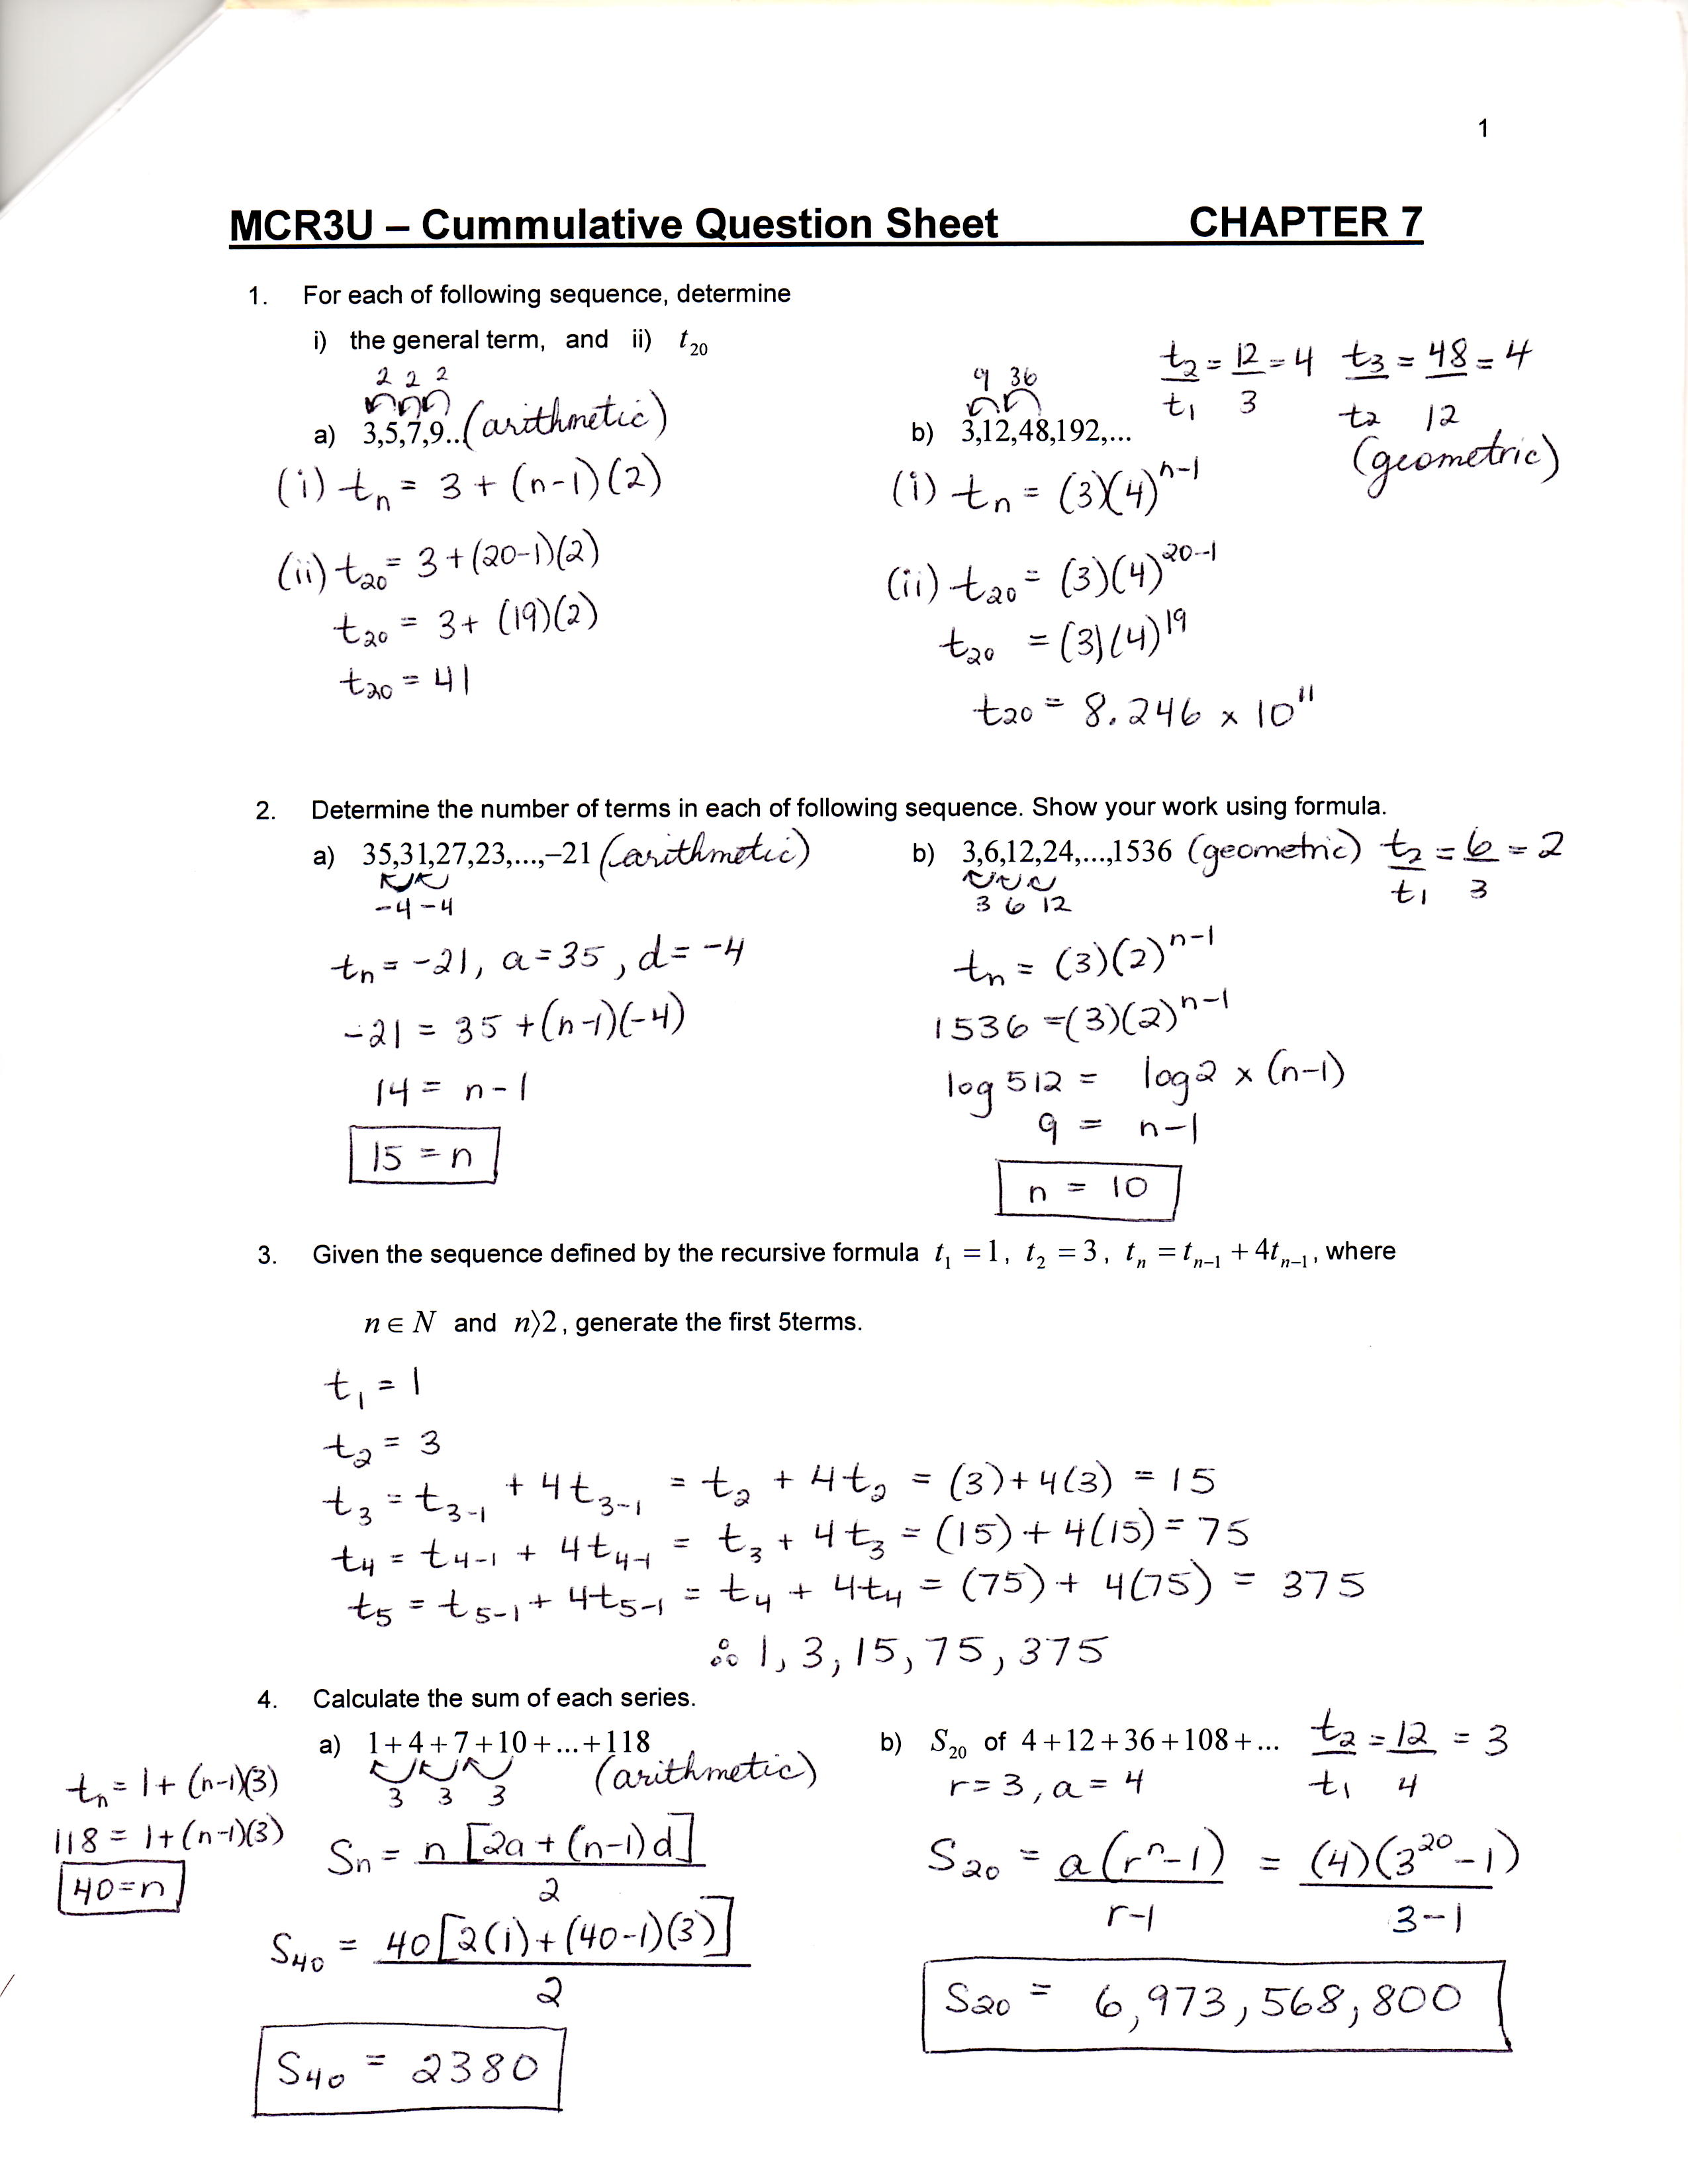 Unit 7 & 8: Sequences, Series, and Financial Applications ...